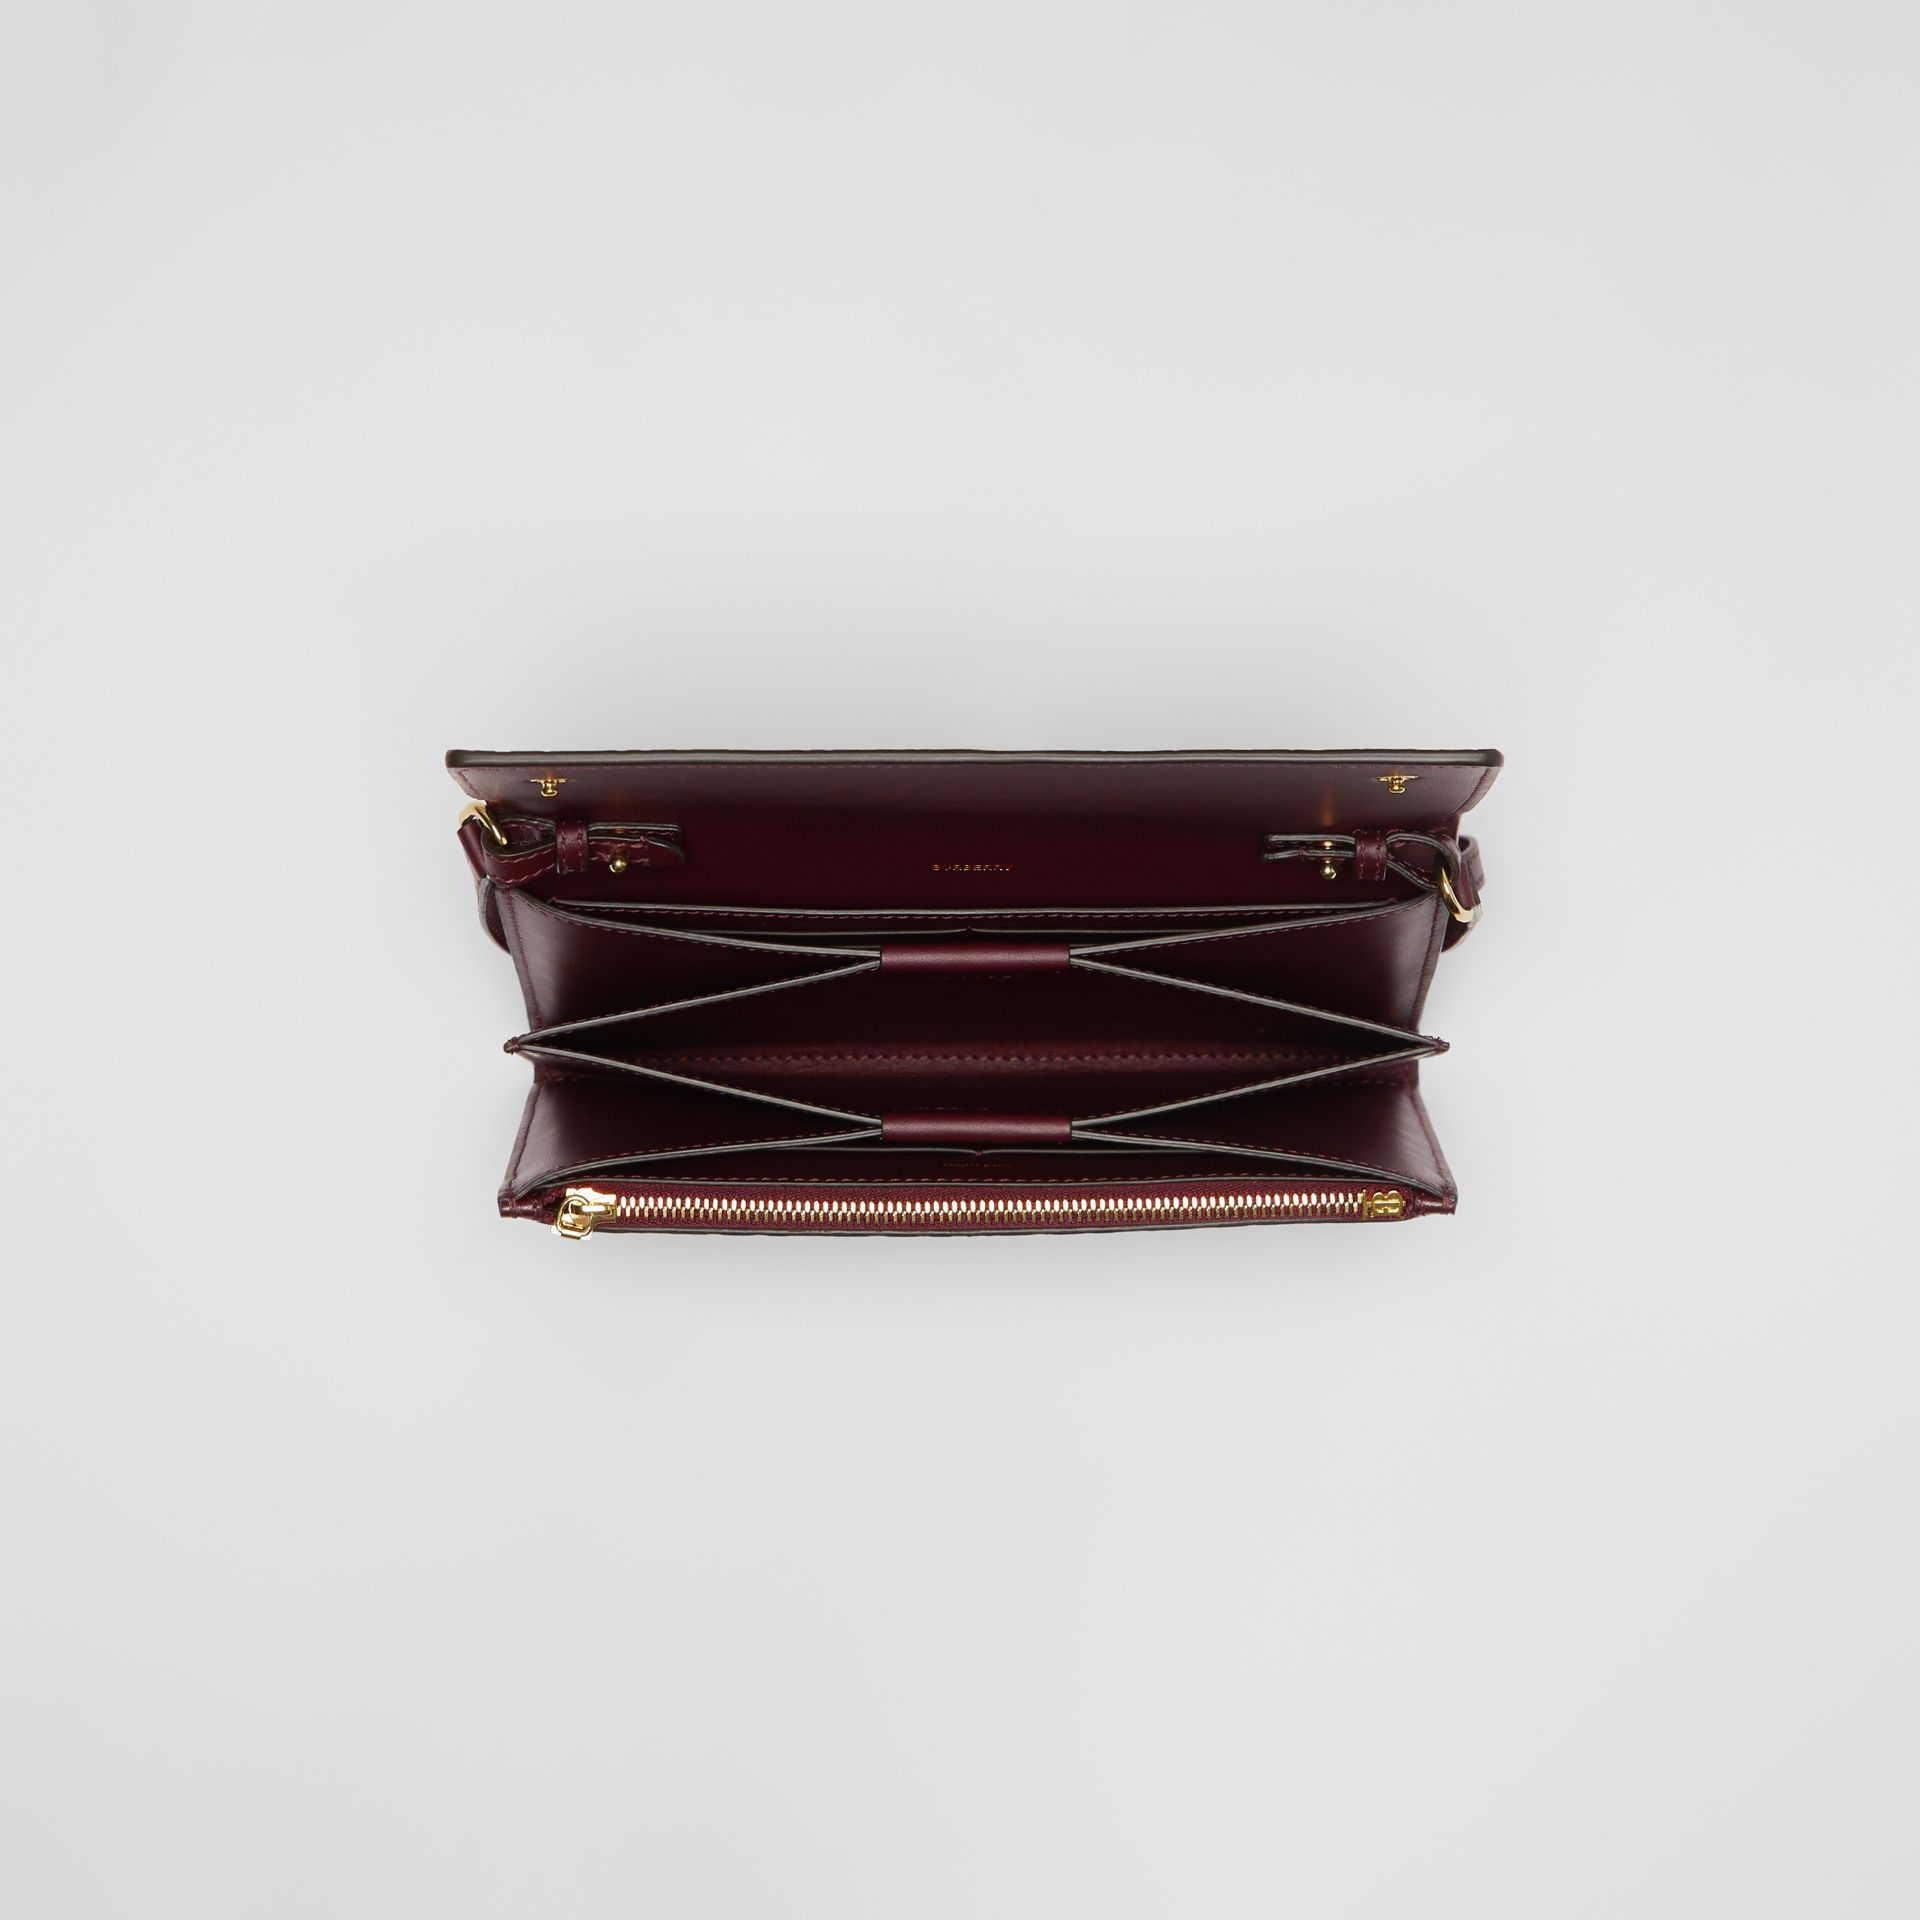 Portefeuille en cuir Monogram avec sangle amovible (Oxblood) - Femme | Burberry - photo de la galerie 4